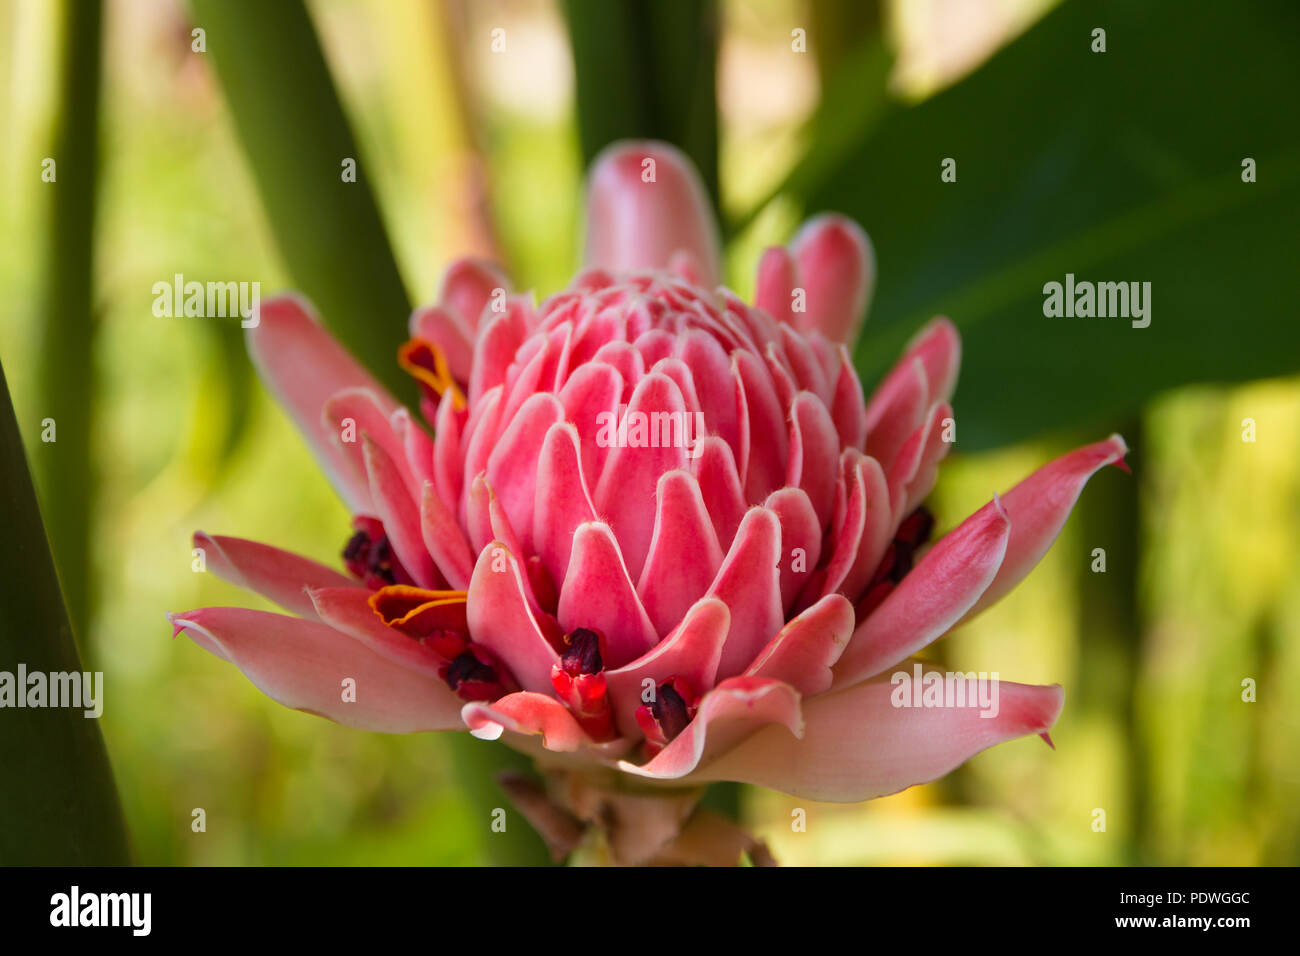 Nice closeup of a beautiful pink rose de porcelaine (Etlingera elatior). This special flower is used as decoration in flower arrangements like ikebana... - Stock Image